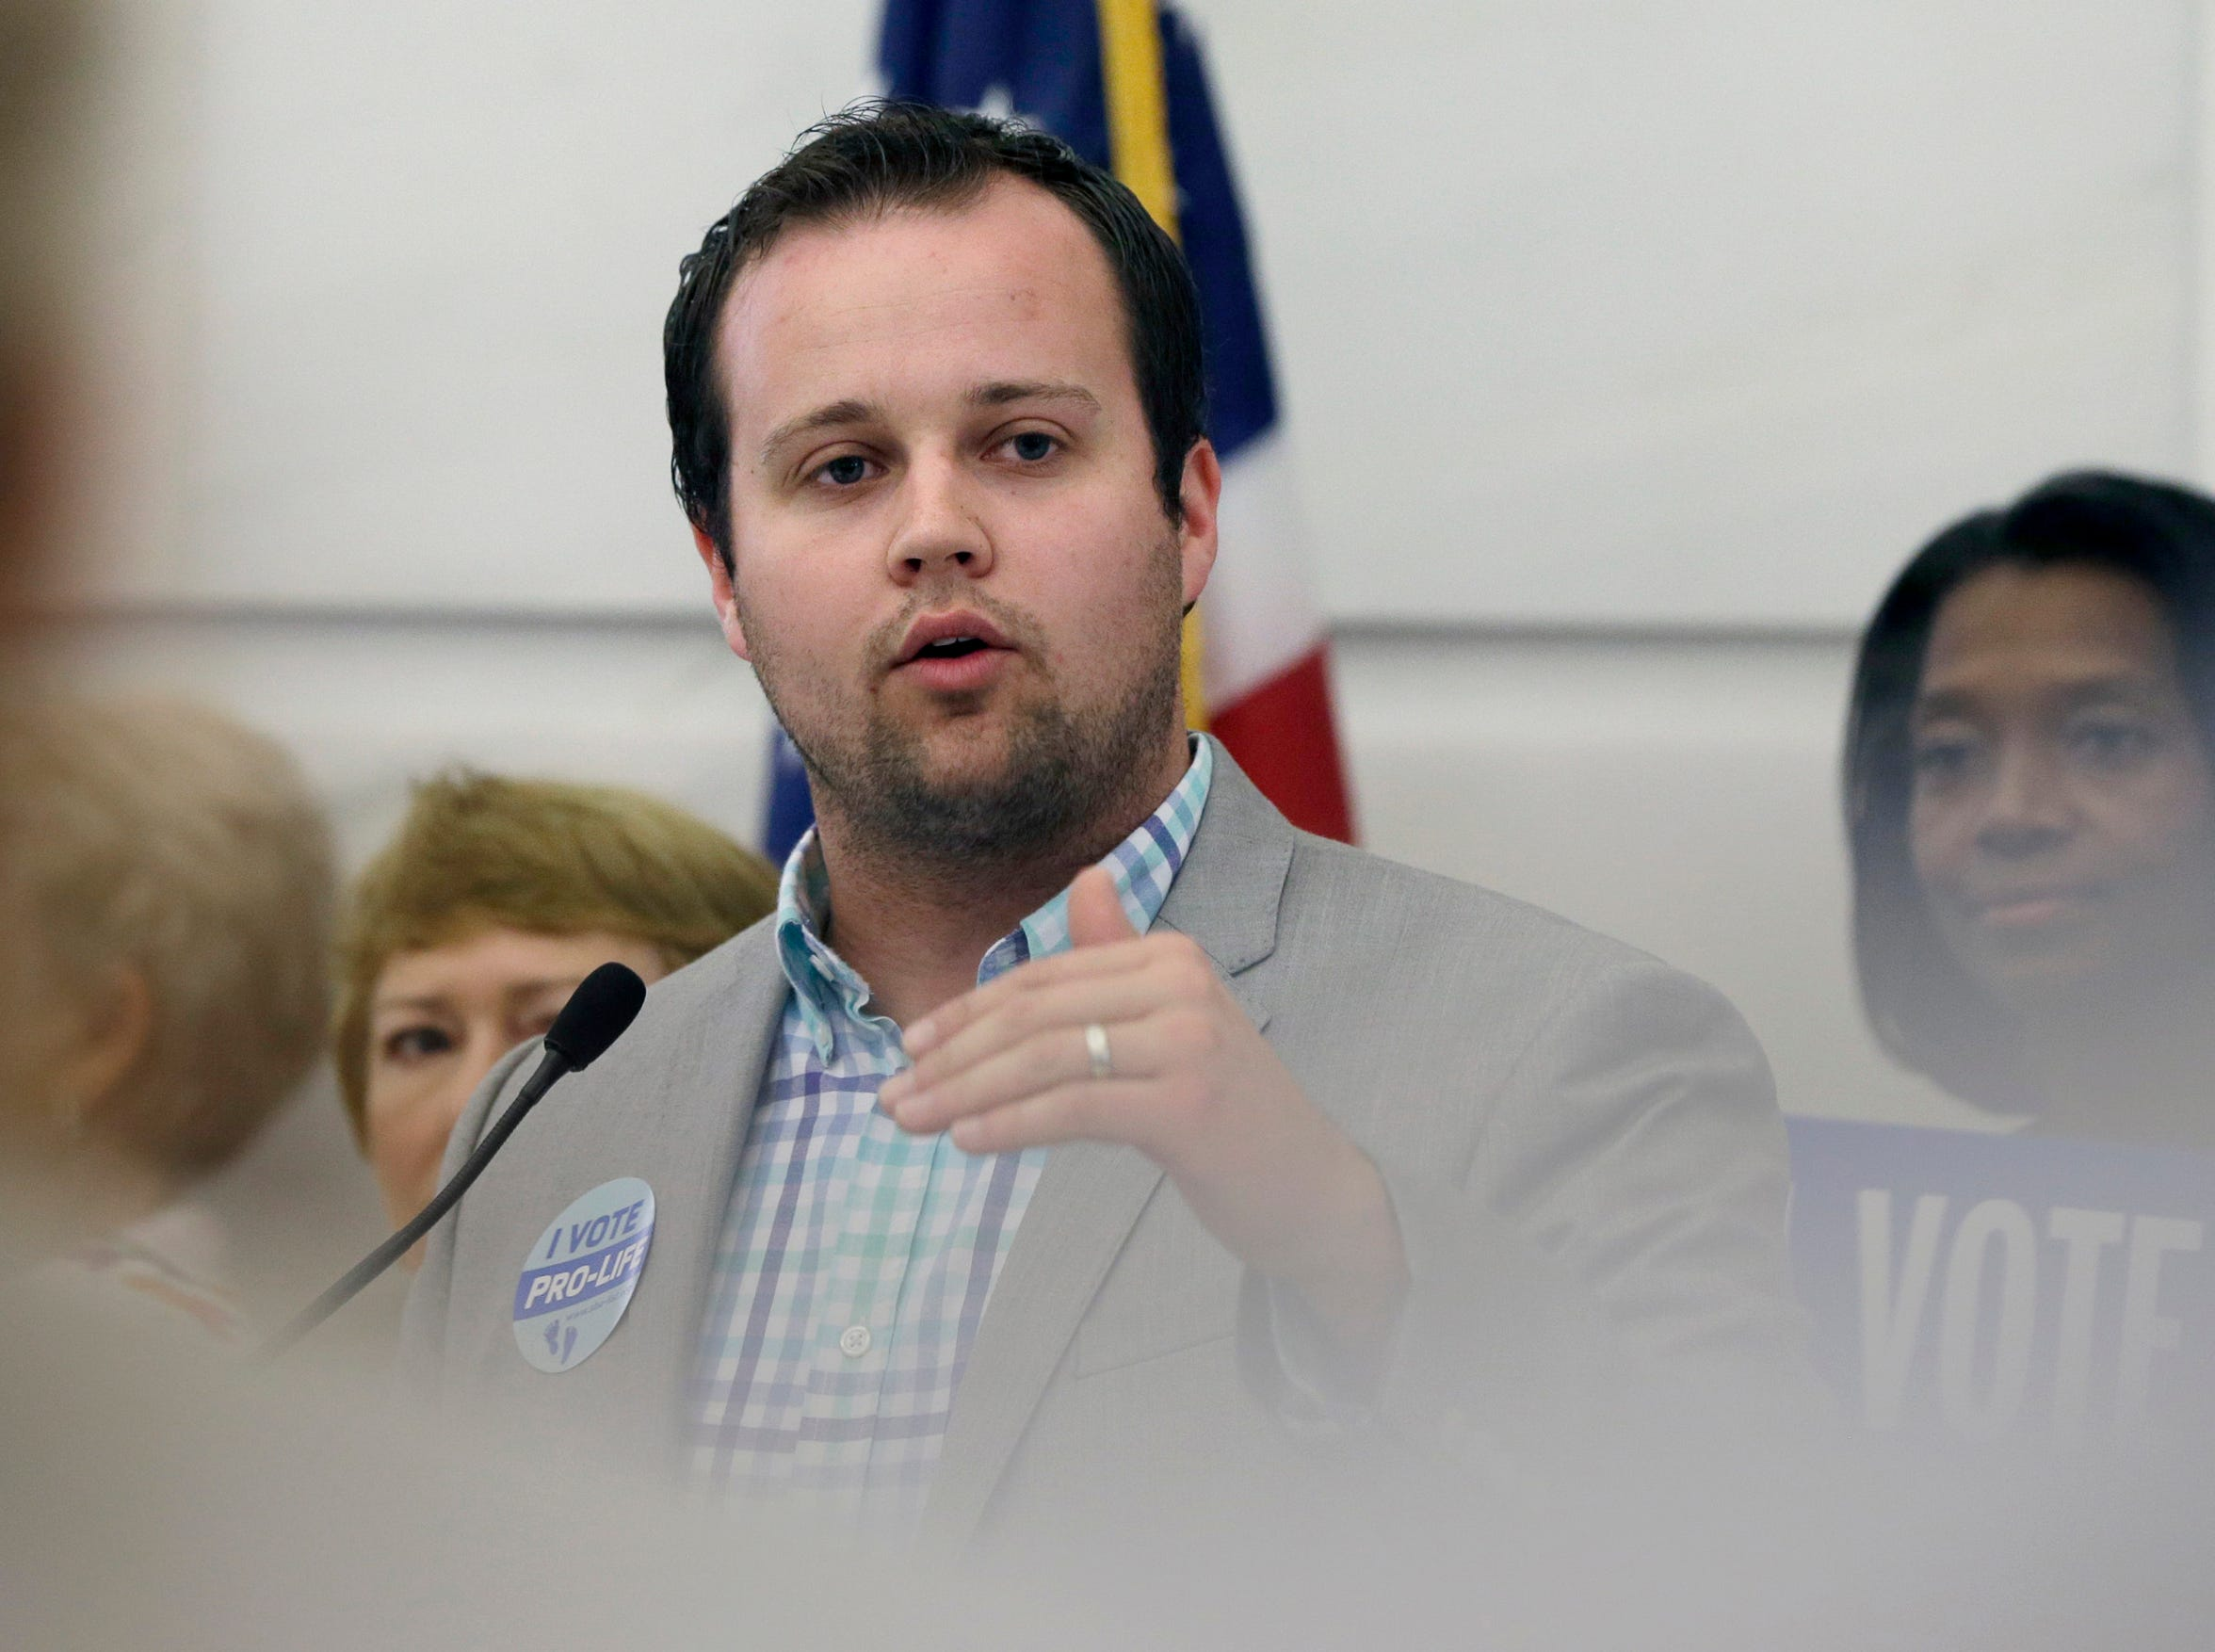 Josh Duggar Is Being Sued By A Porn Star For Assault After Their Seedy Sexcapades